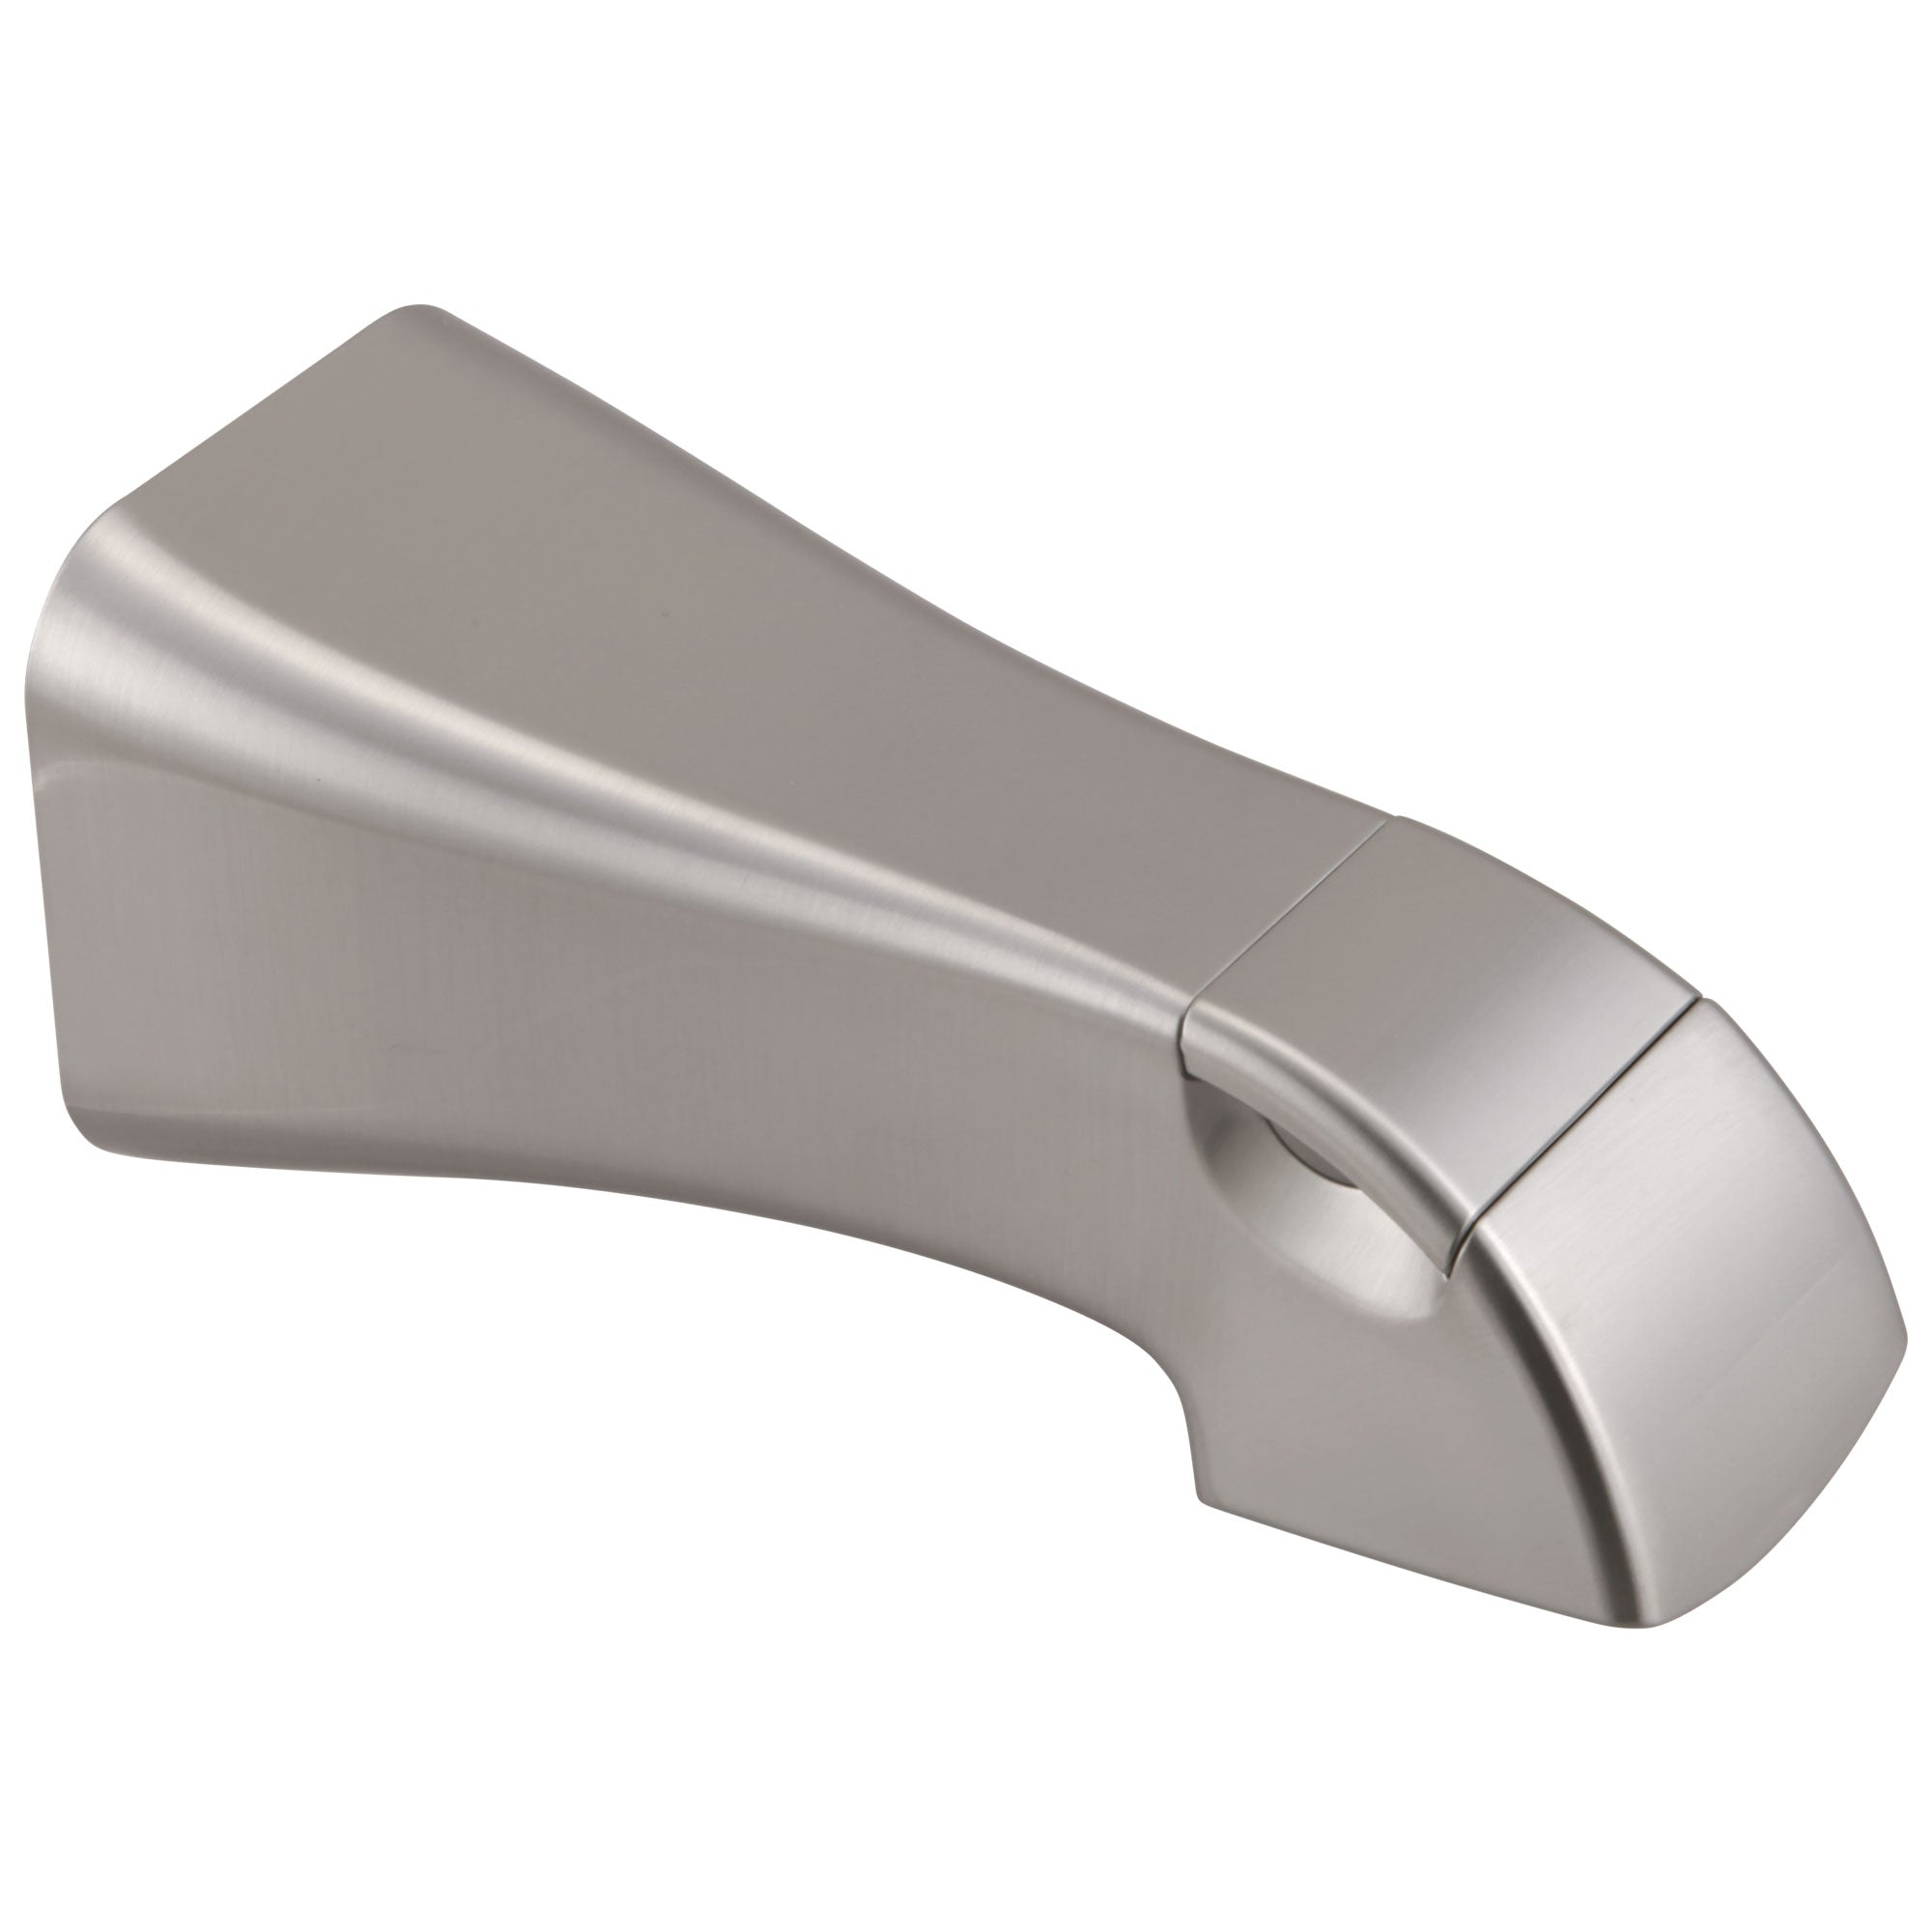 Delta Tesla Collection Stainless Steel Finish Wall Mounted Modern Pull-Up Diverter Bath Tub Spout DRP78735SS